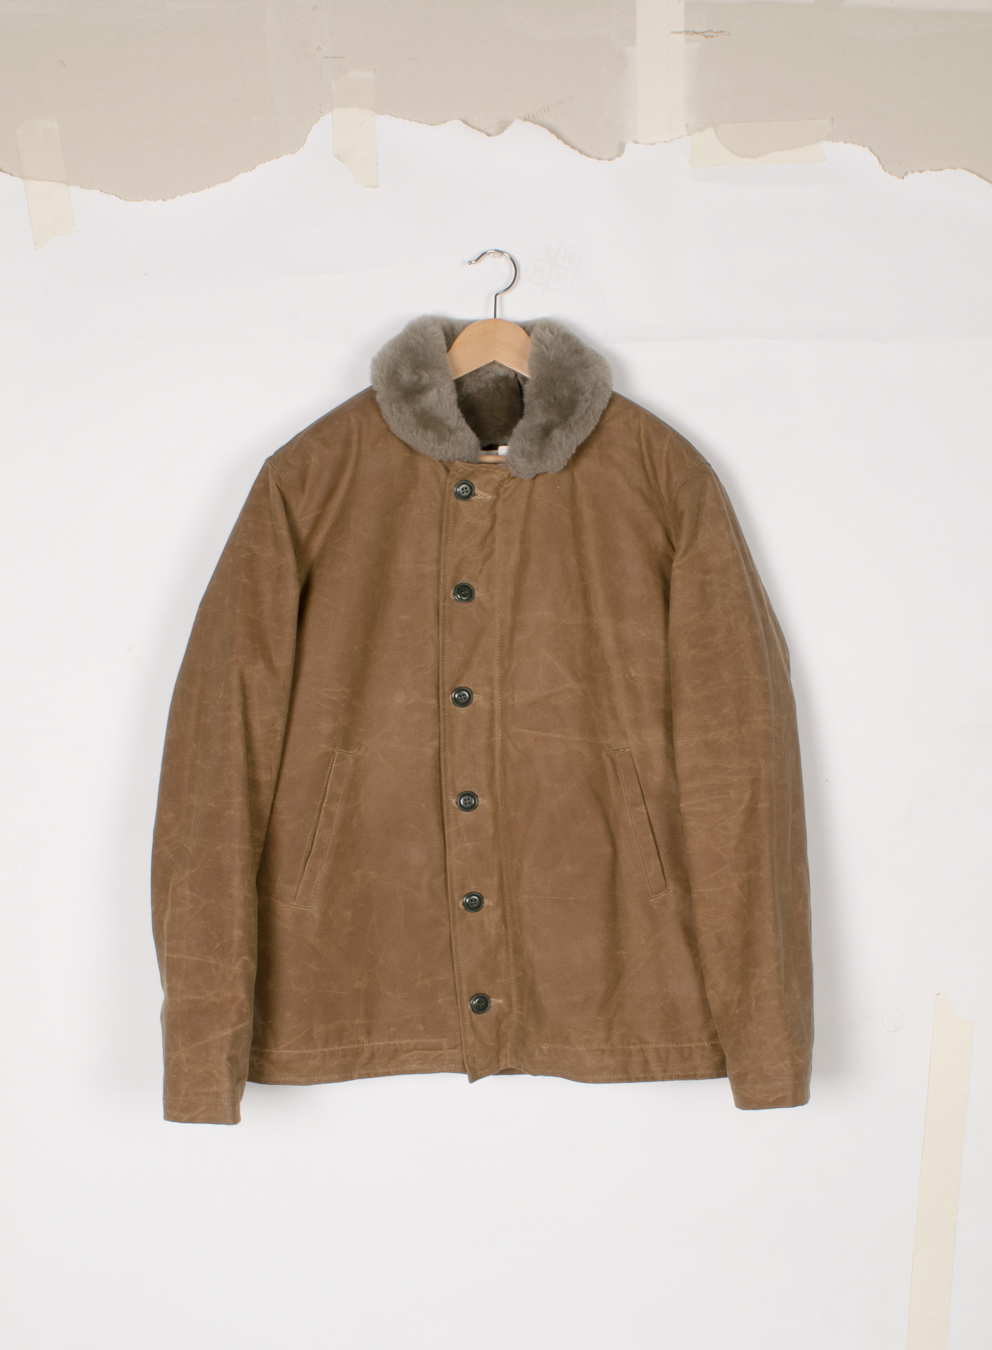 N-1 Deck Jacket - Field Tan/Grey - $1250